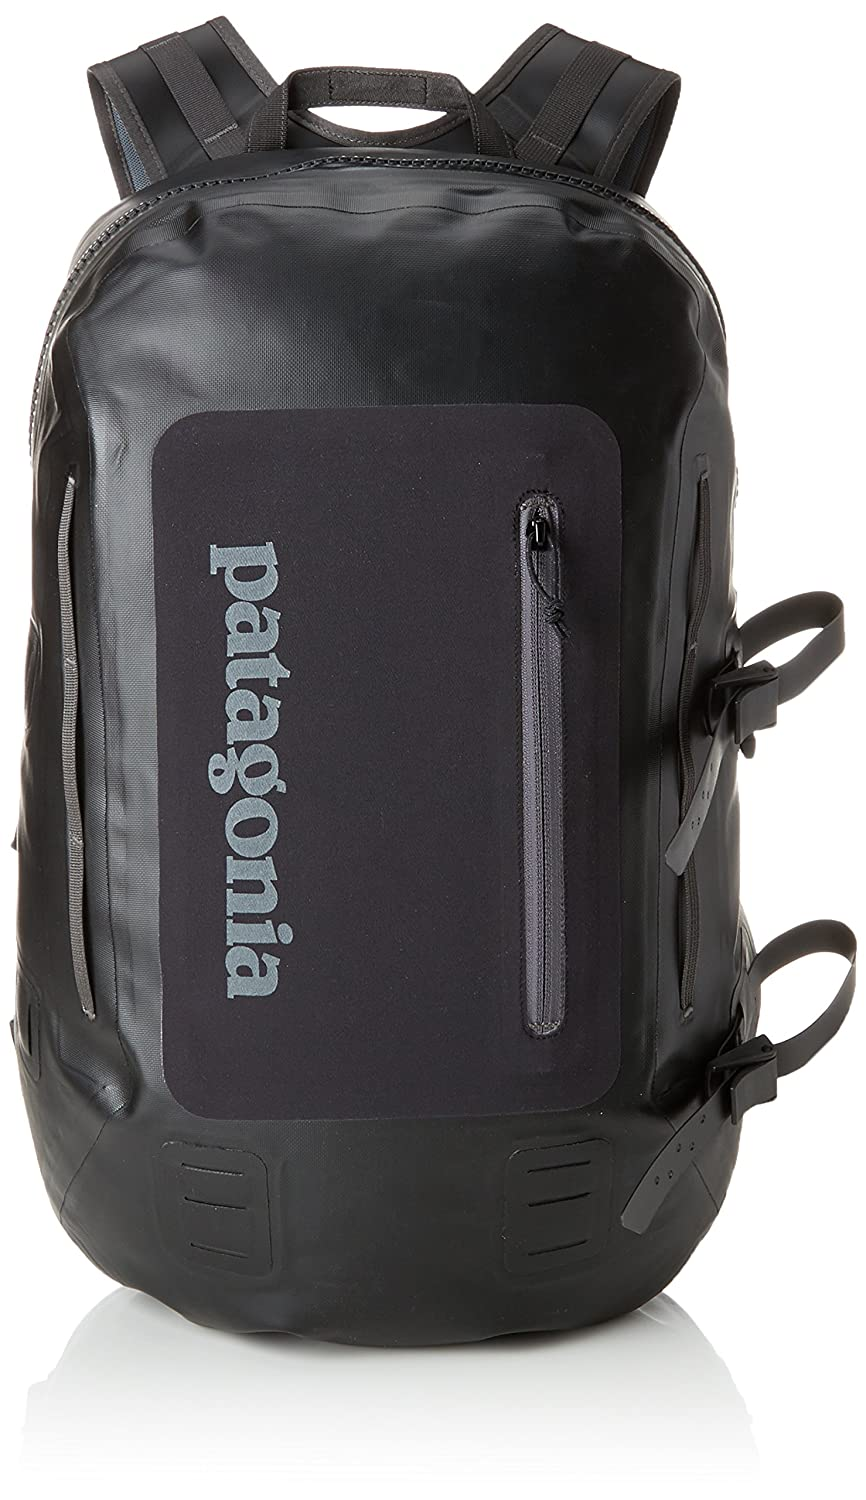 patagonia(パタゴニア) Stormfront Pack BLK ALL 49154 B01N3W3FHA